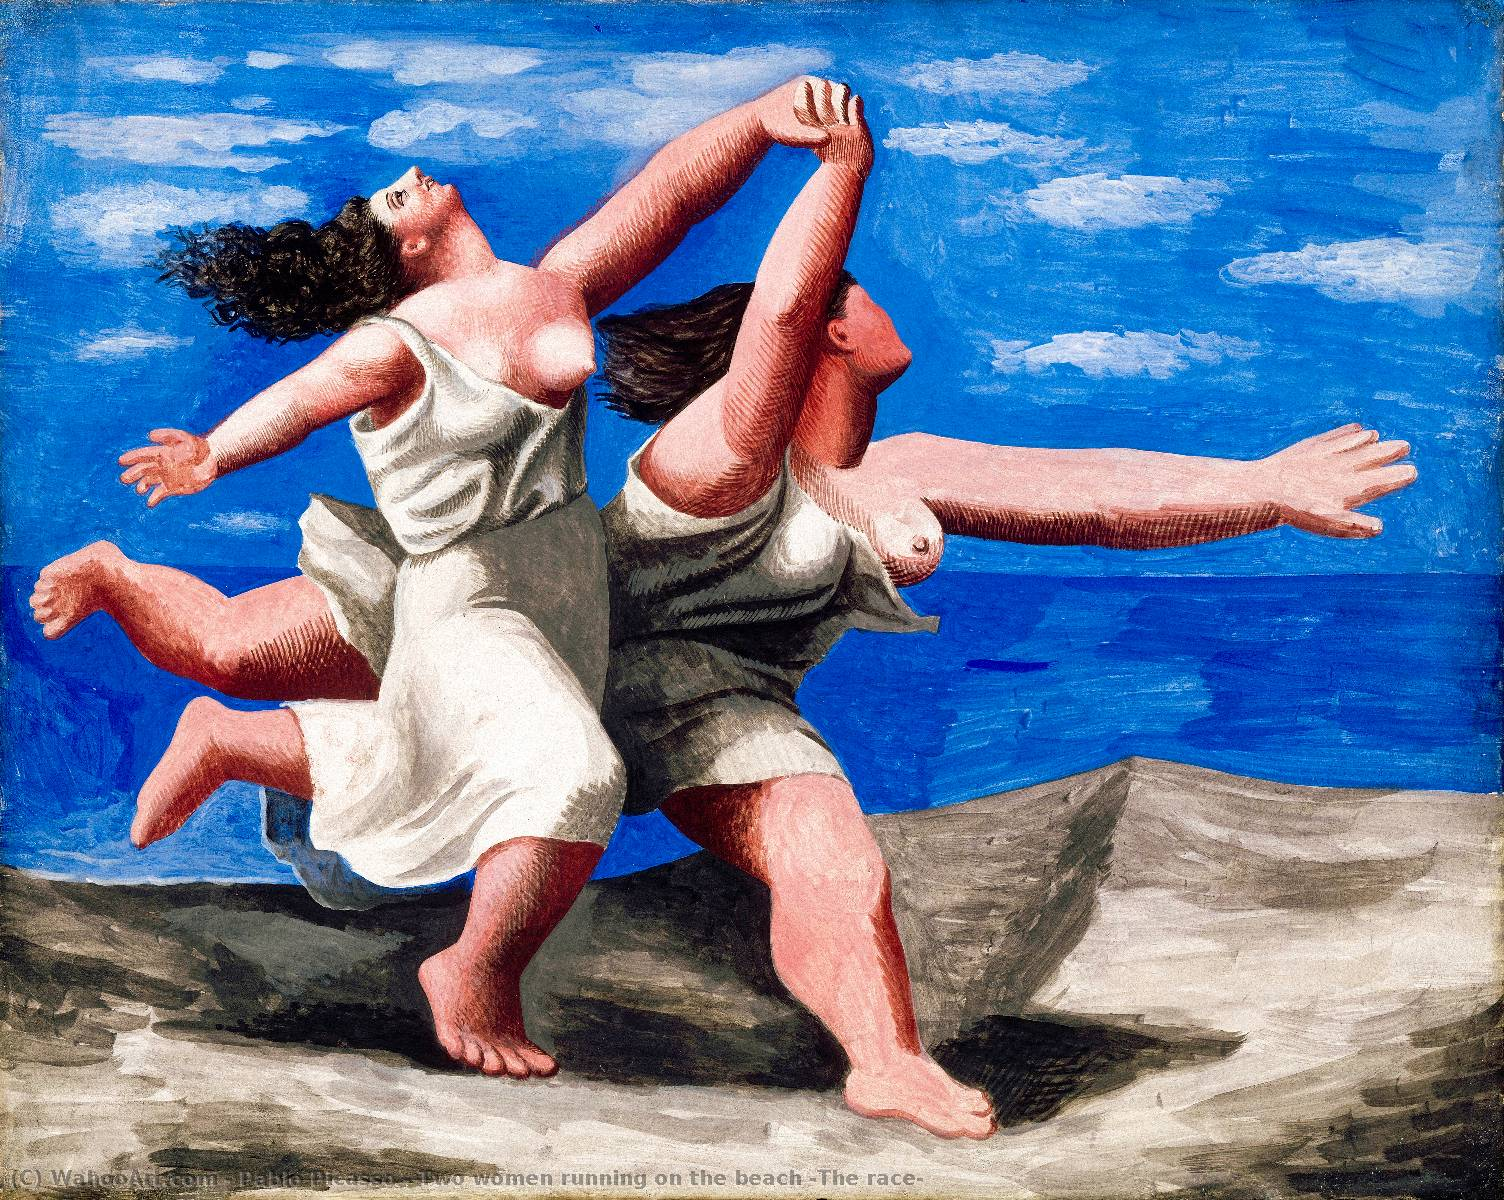 | dos mujeres corriendo  en  el  Playa  el  carrera  de Pablo Picasso | Most-Famous-Paintings.com